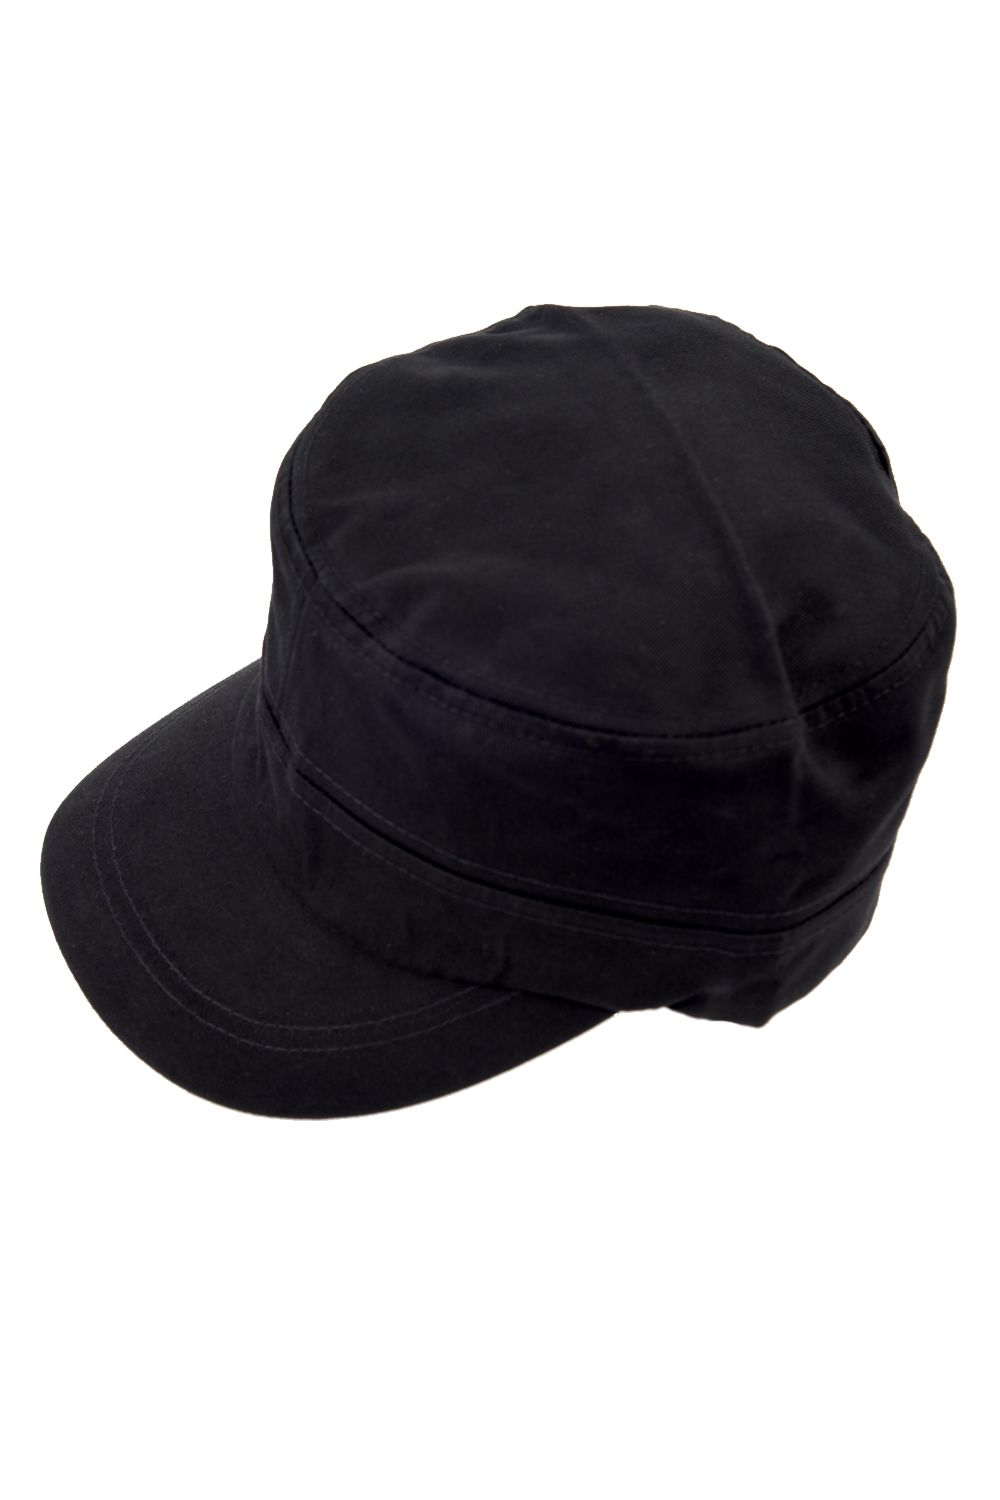 ccc34bfb ... cheap urban hats buy quality army hat directly from china baseball cap  suppliers hot coool unisex